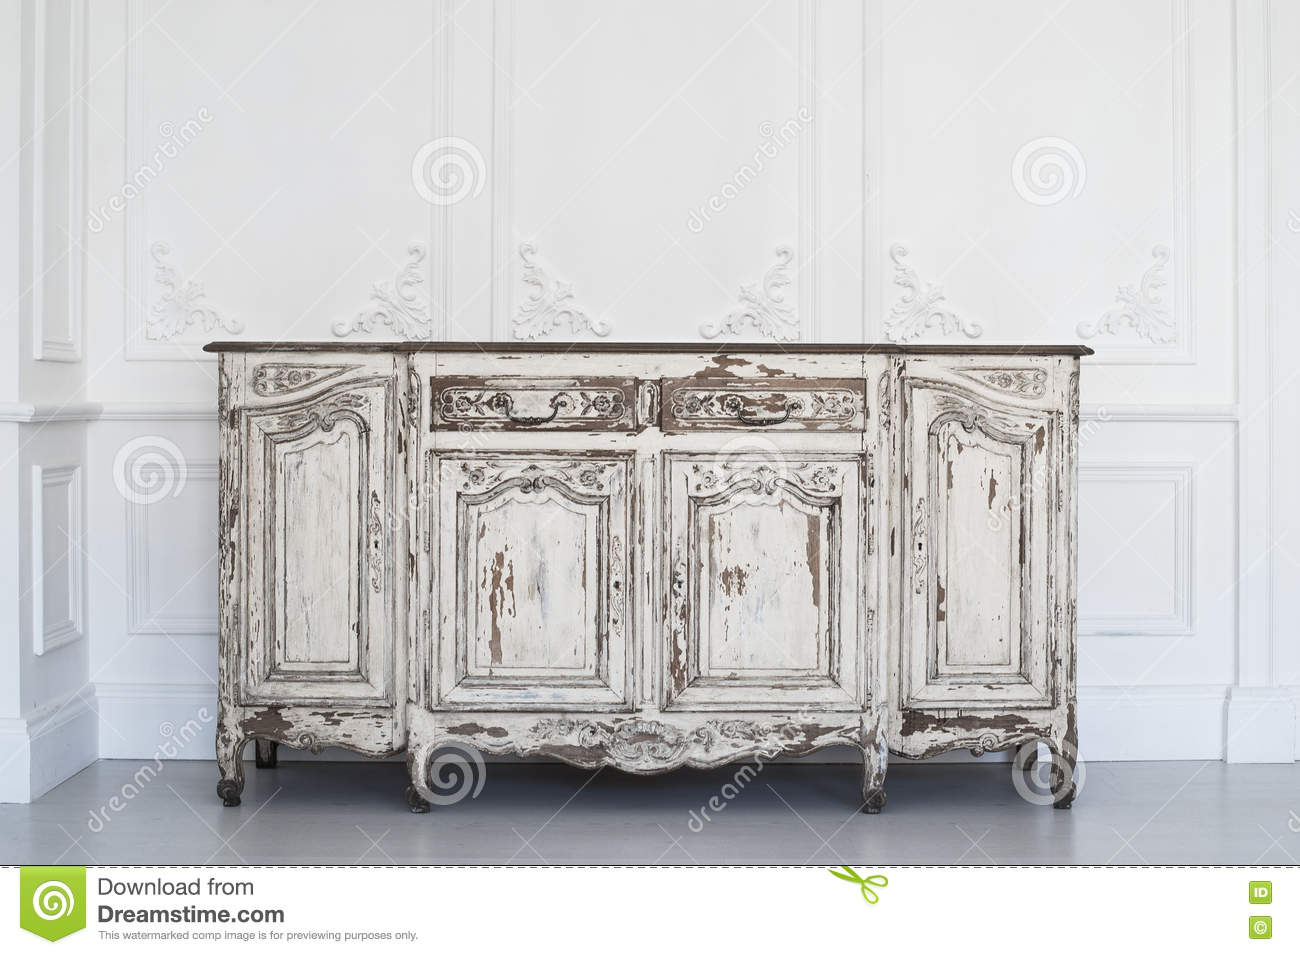 Royalty-Free Stock Photo - Ancient White Commode Bureau With Paint Peeled  Off On Luxury. Antique Furniture Mouldings ... - Antique Furniture Mouldings Antique Furniture